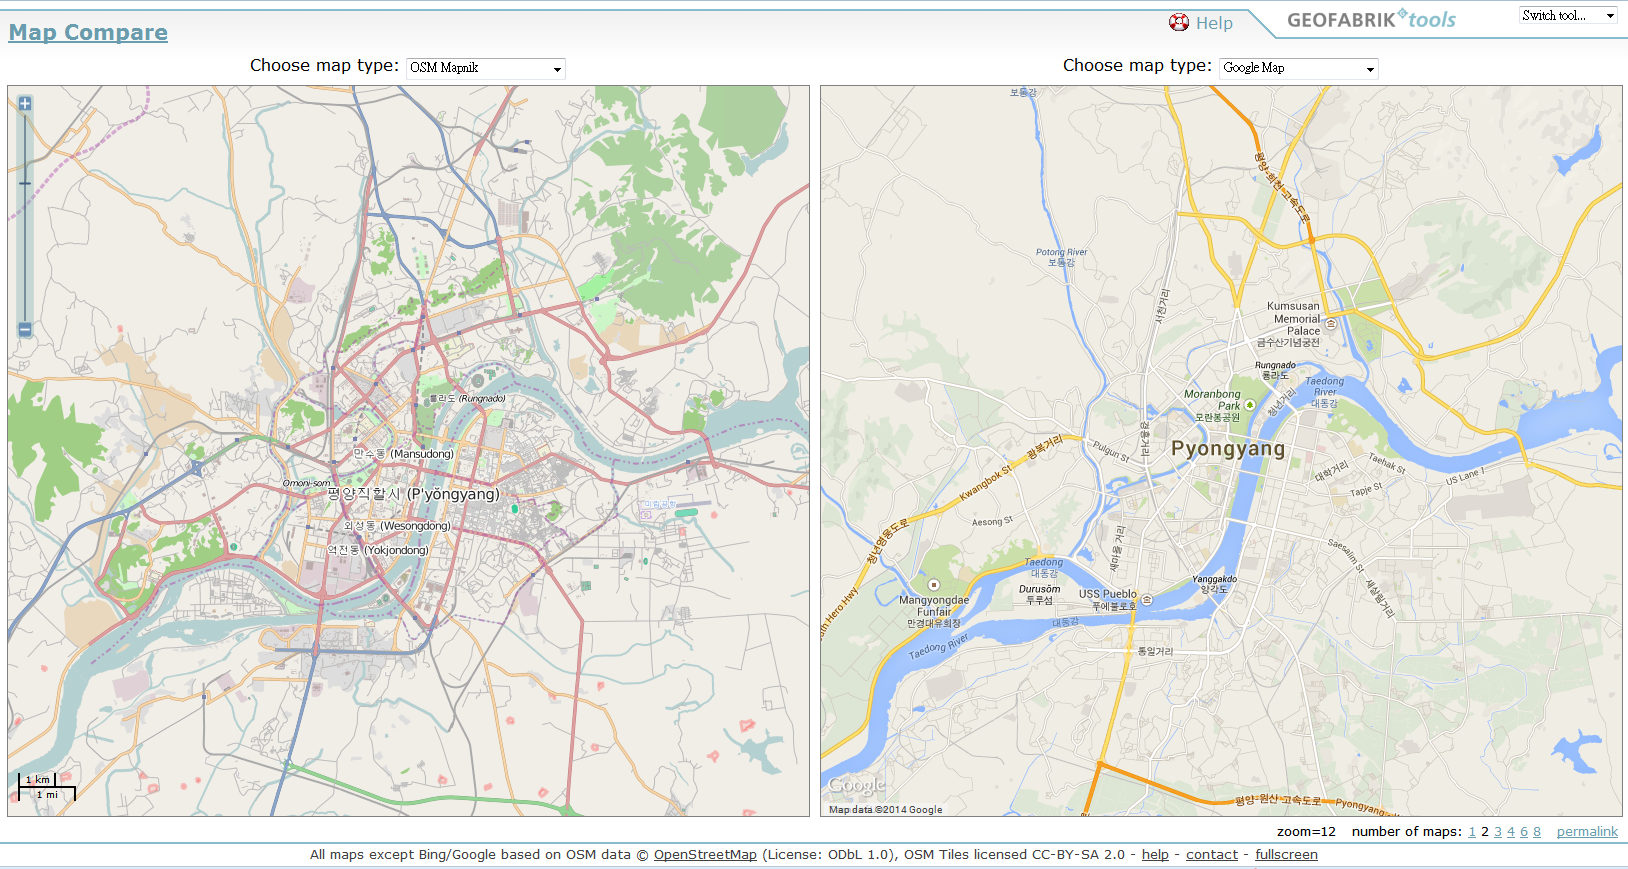 2014-02-26 15_16_20-Map Compare _ Geofabrik Tools